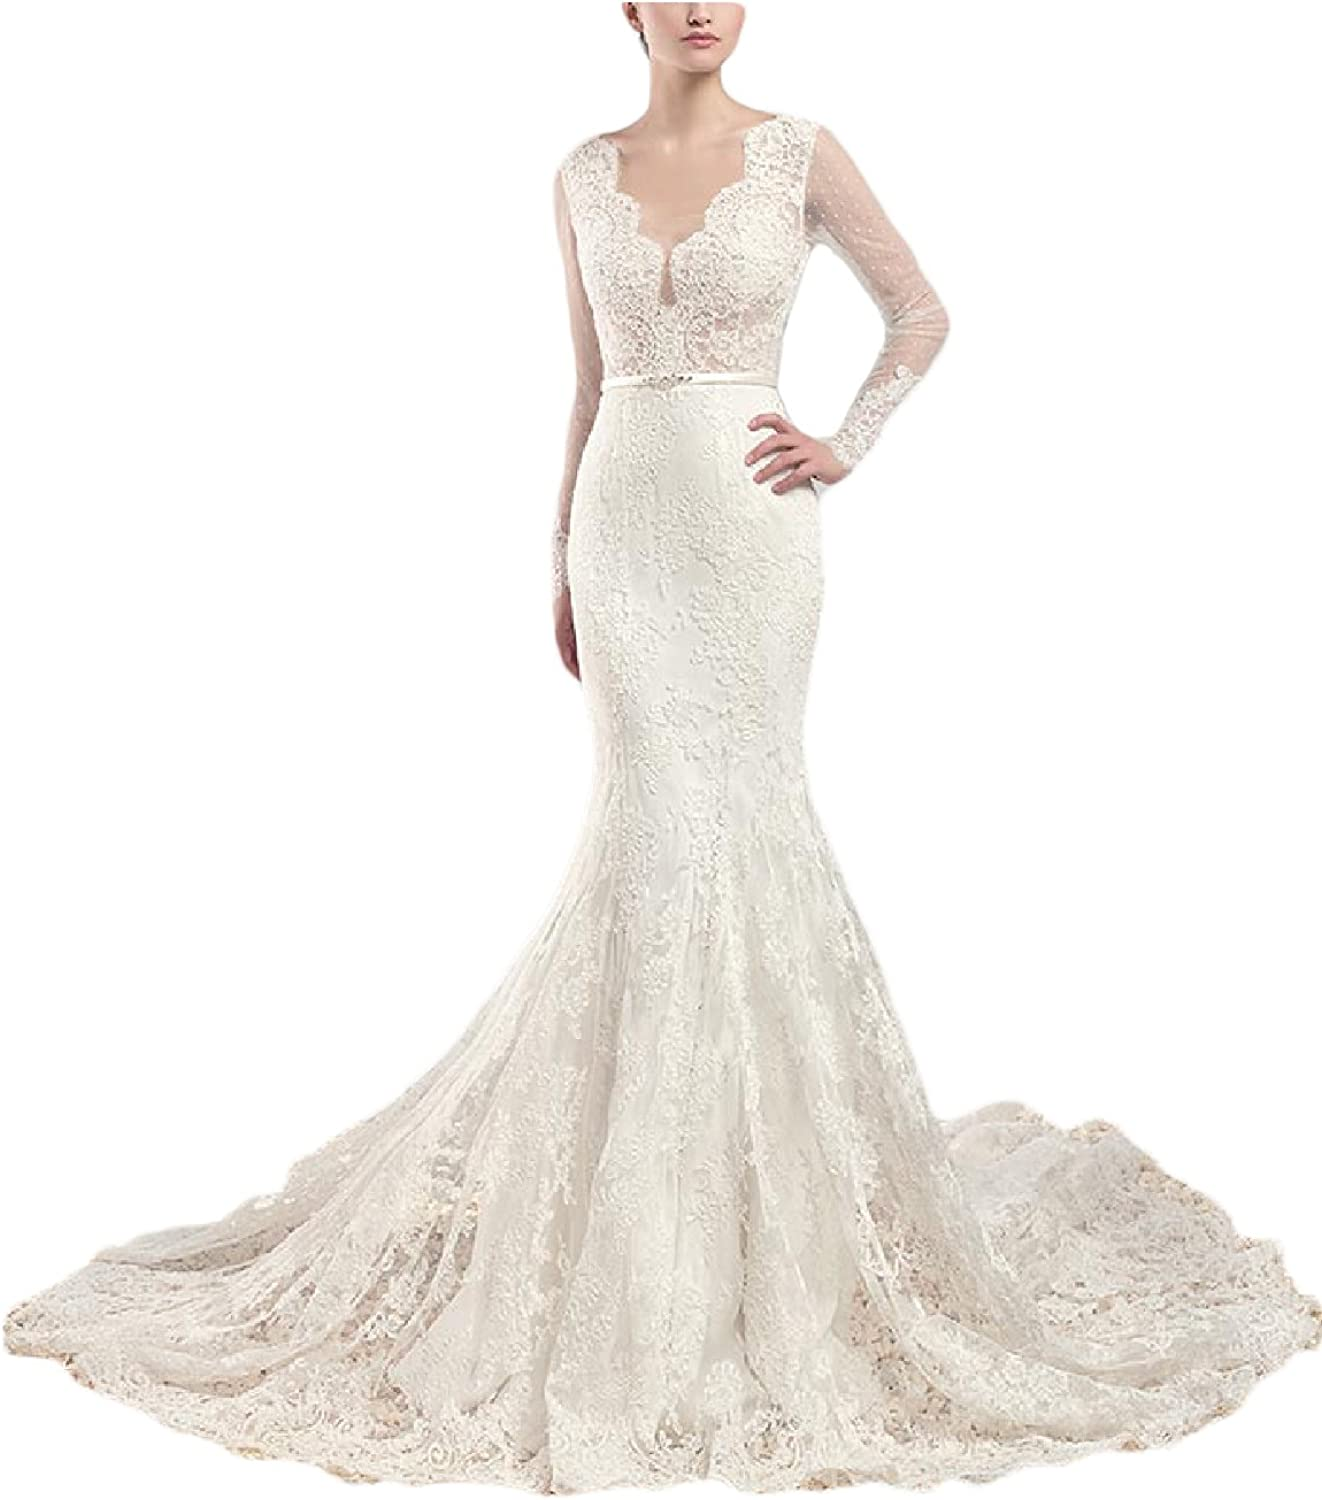 YSMei Womens Long Backless Wedding Dress with Sleeves Mermaid Bridal Gown YWD059